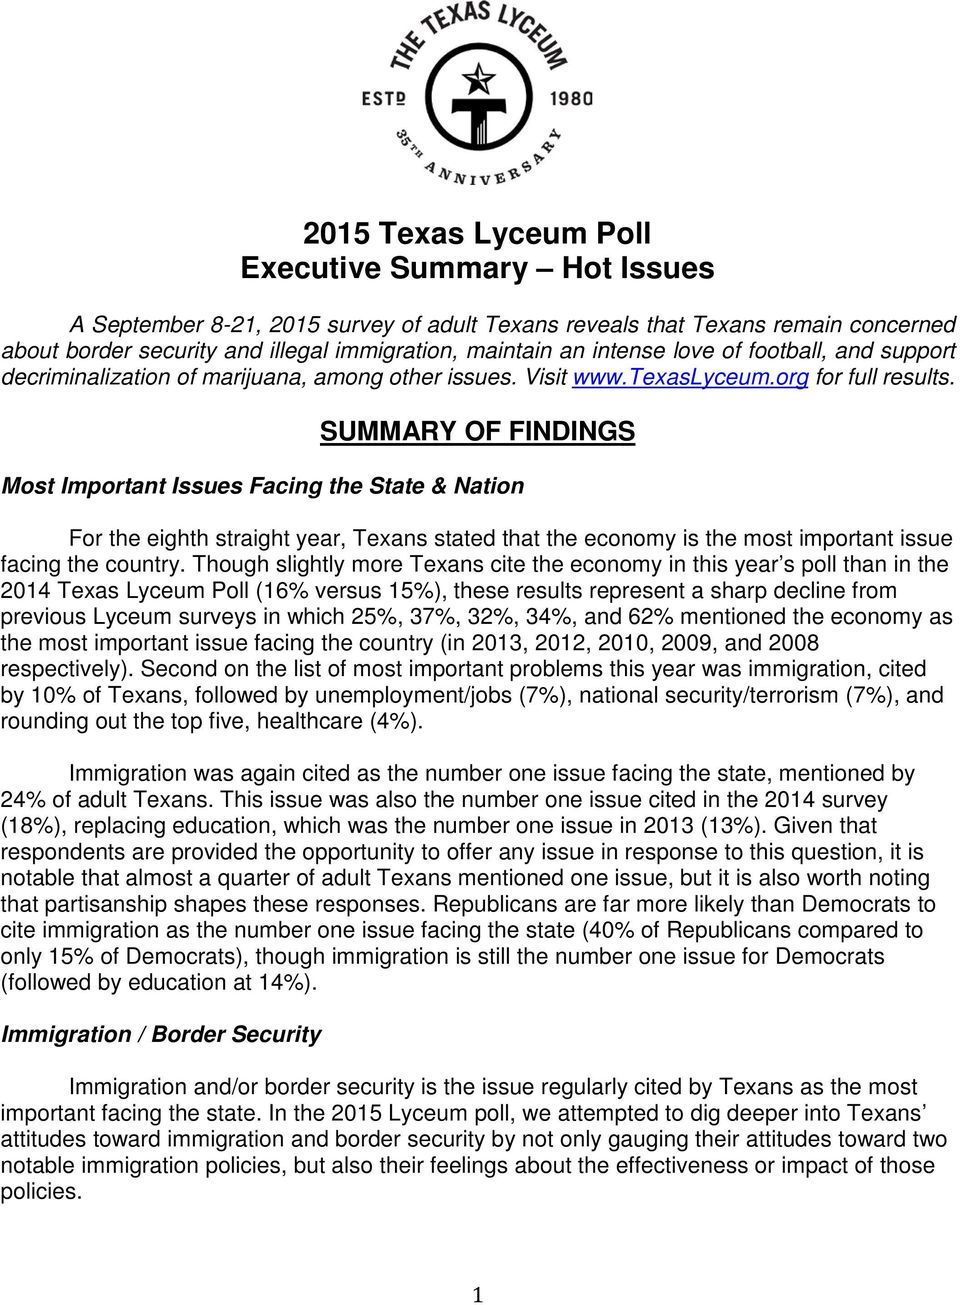 SUMMARY OF FINDINGS Most Important Issues Facing the State & Nation For the eighth straight year, Texans stated that the economy is the most important issue facing the country.